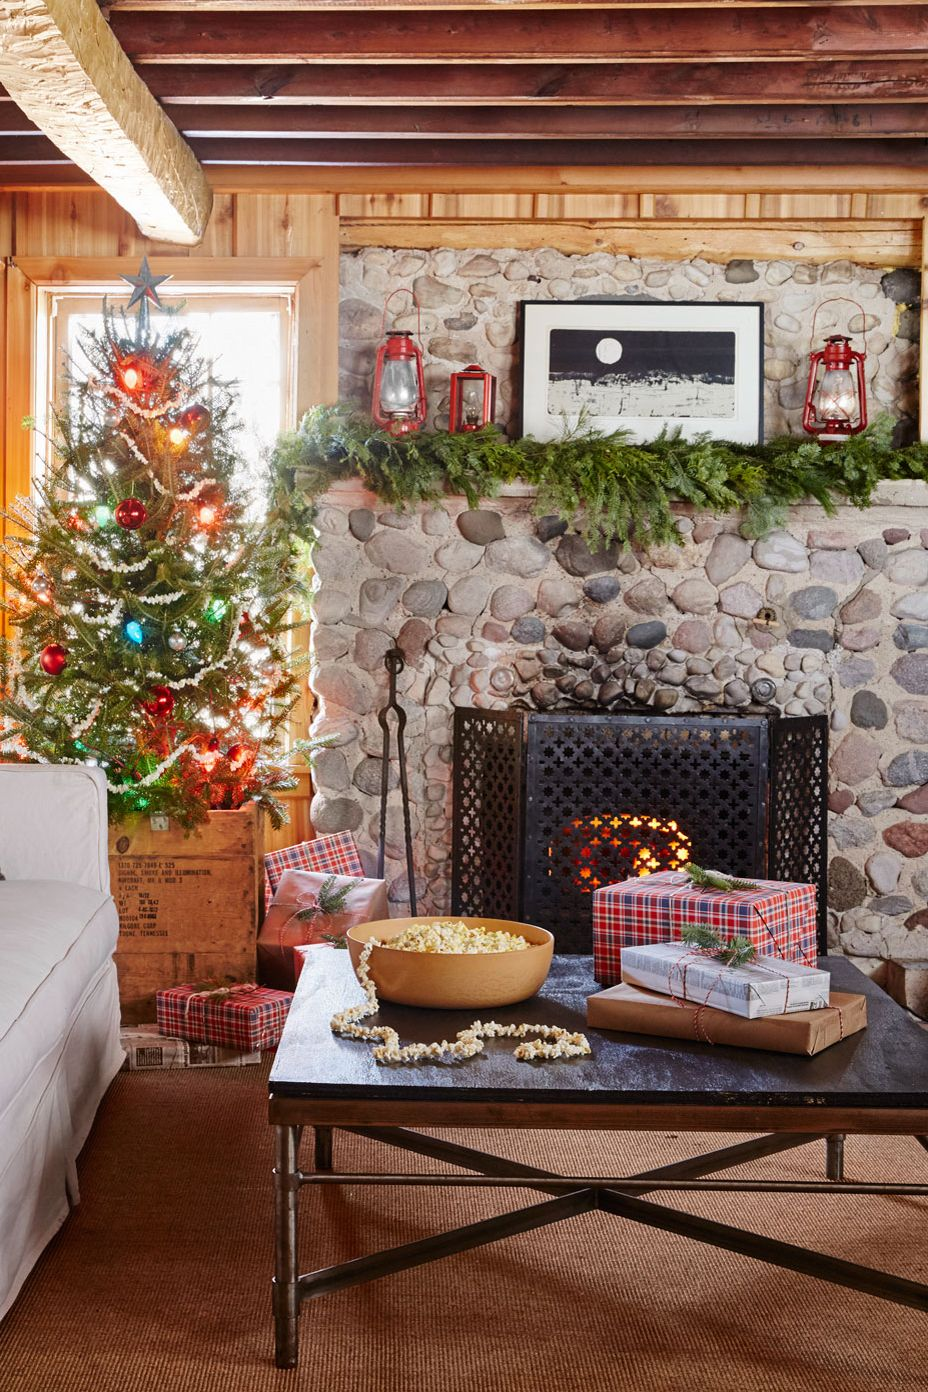 38 Christmas Mantel Decorations - Ideas for Holiday ...